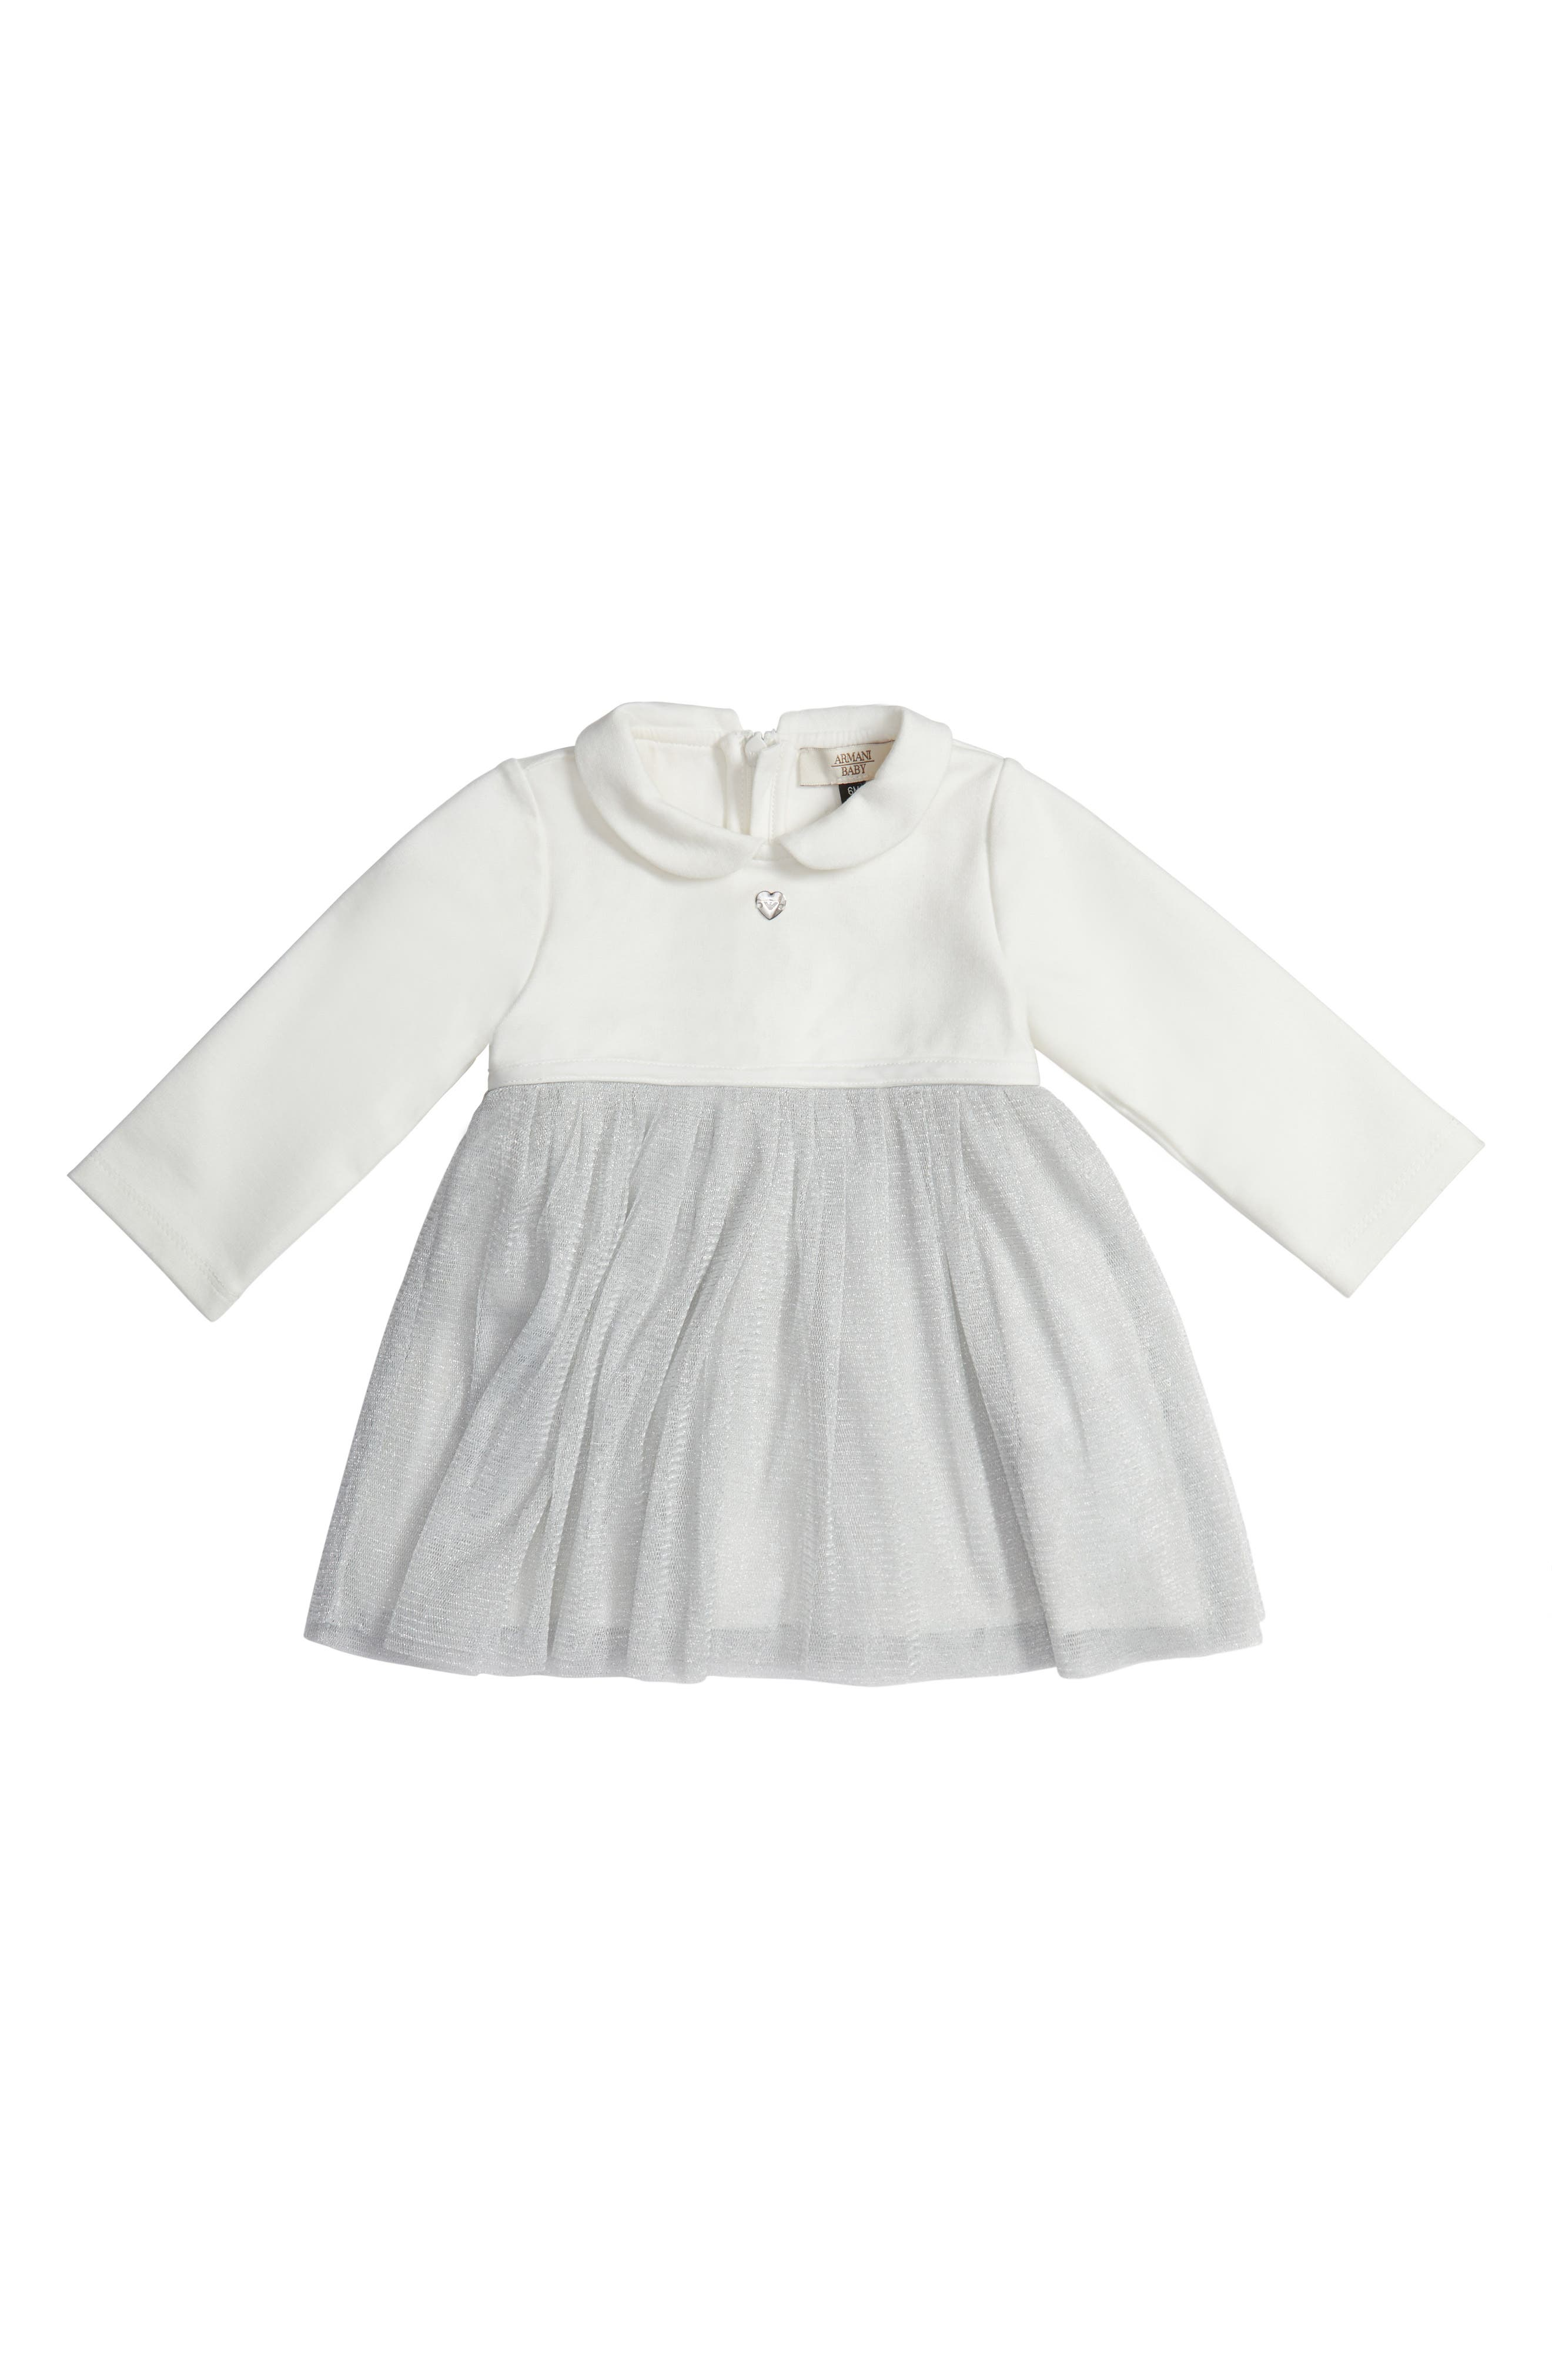 Main Image - Armani Junior Jersey & Tulle Dress (Baby Girls)